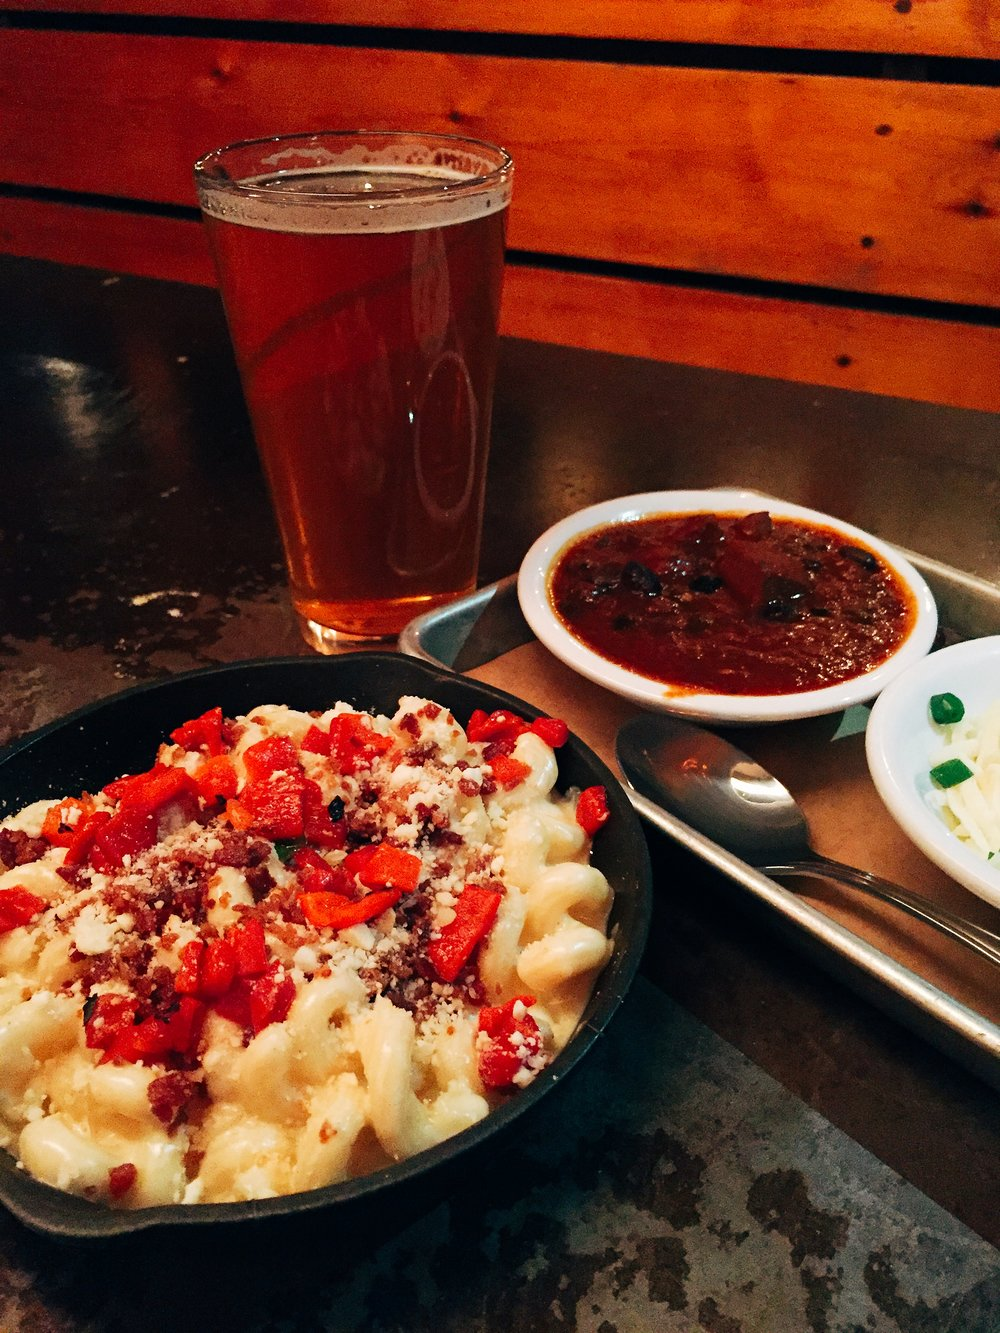 Bacon and smoked feta mac and cheese skillet and their award winning chili